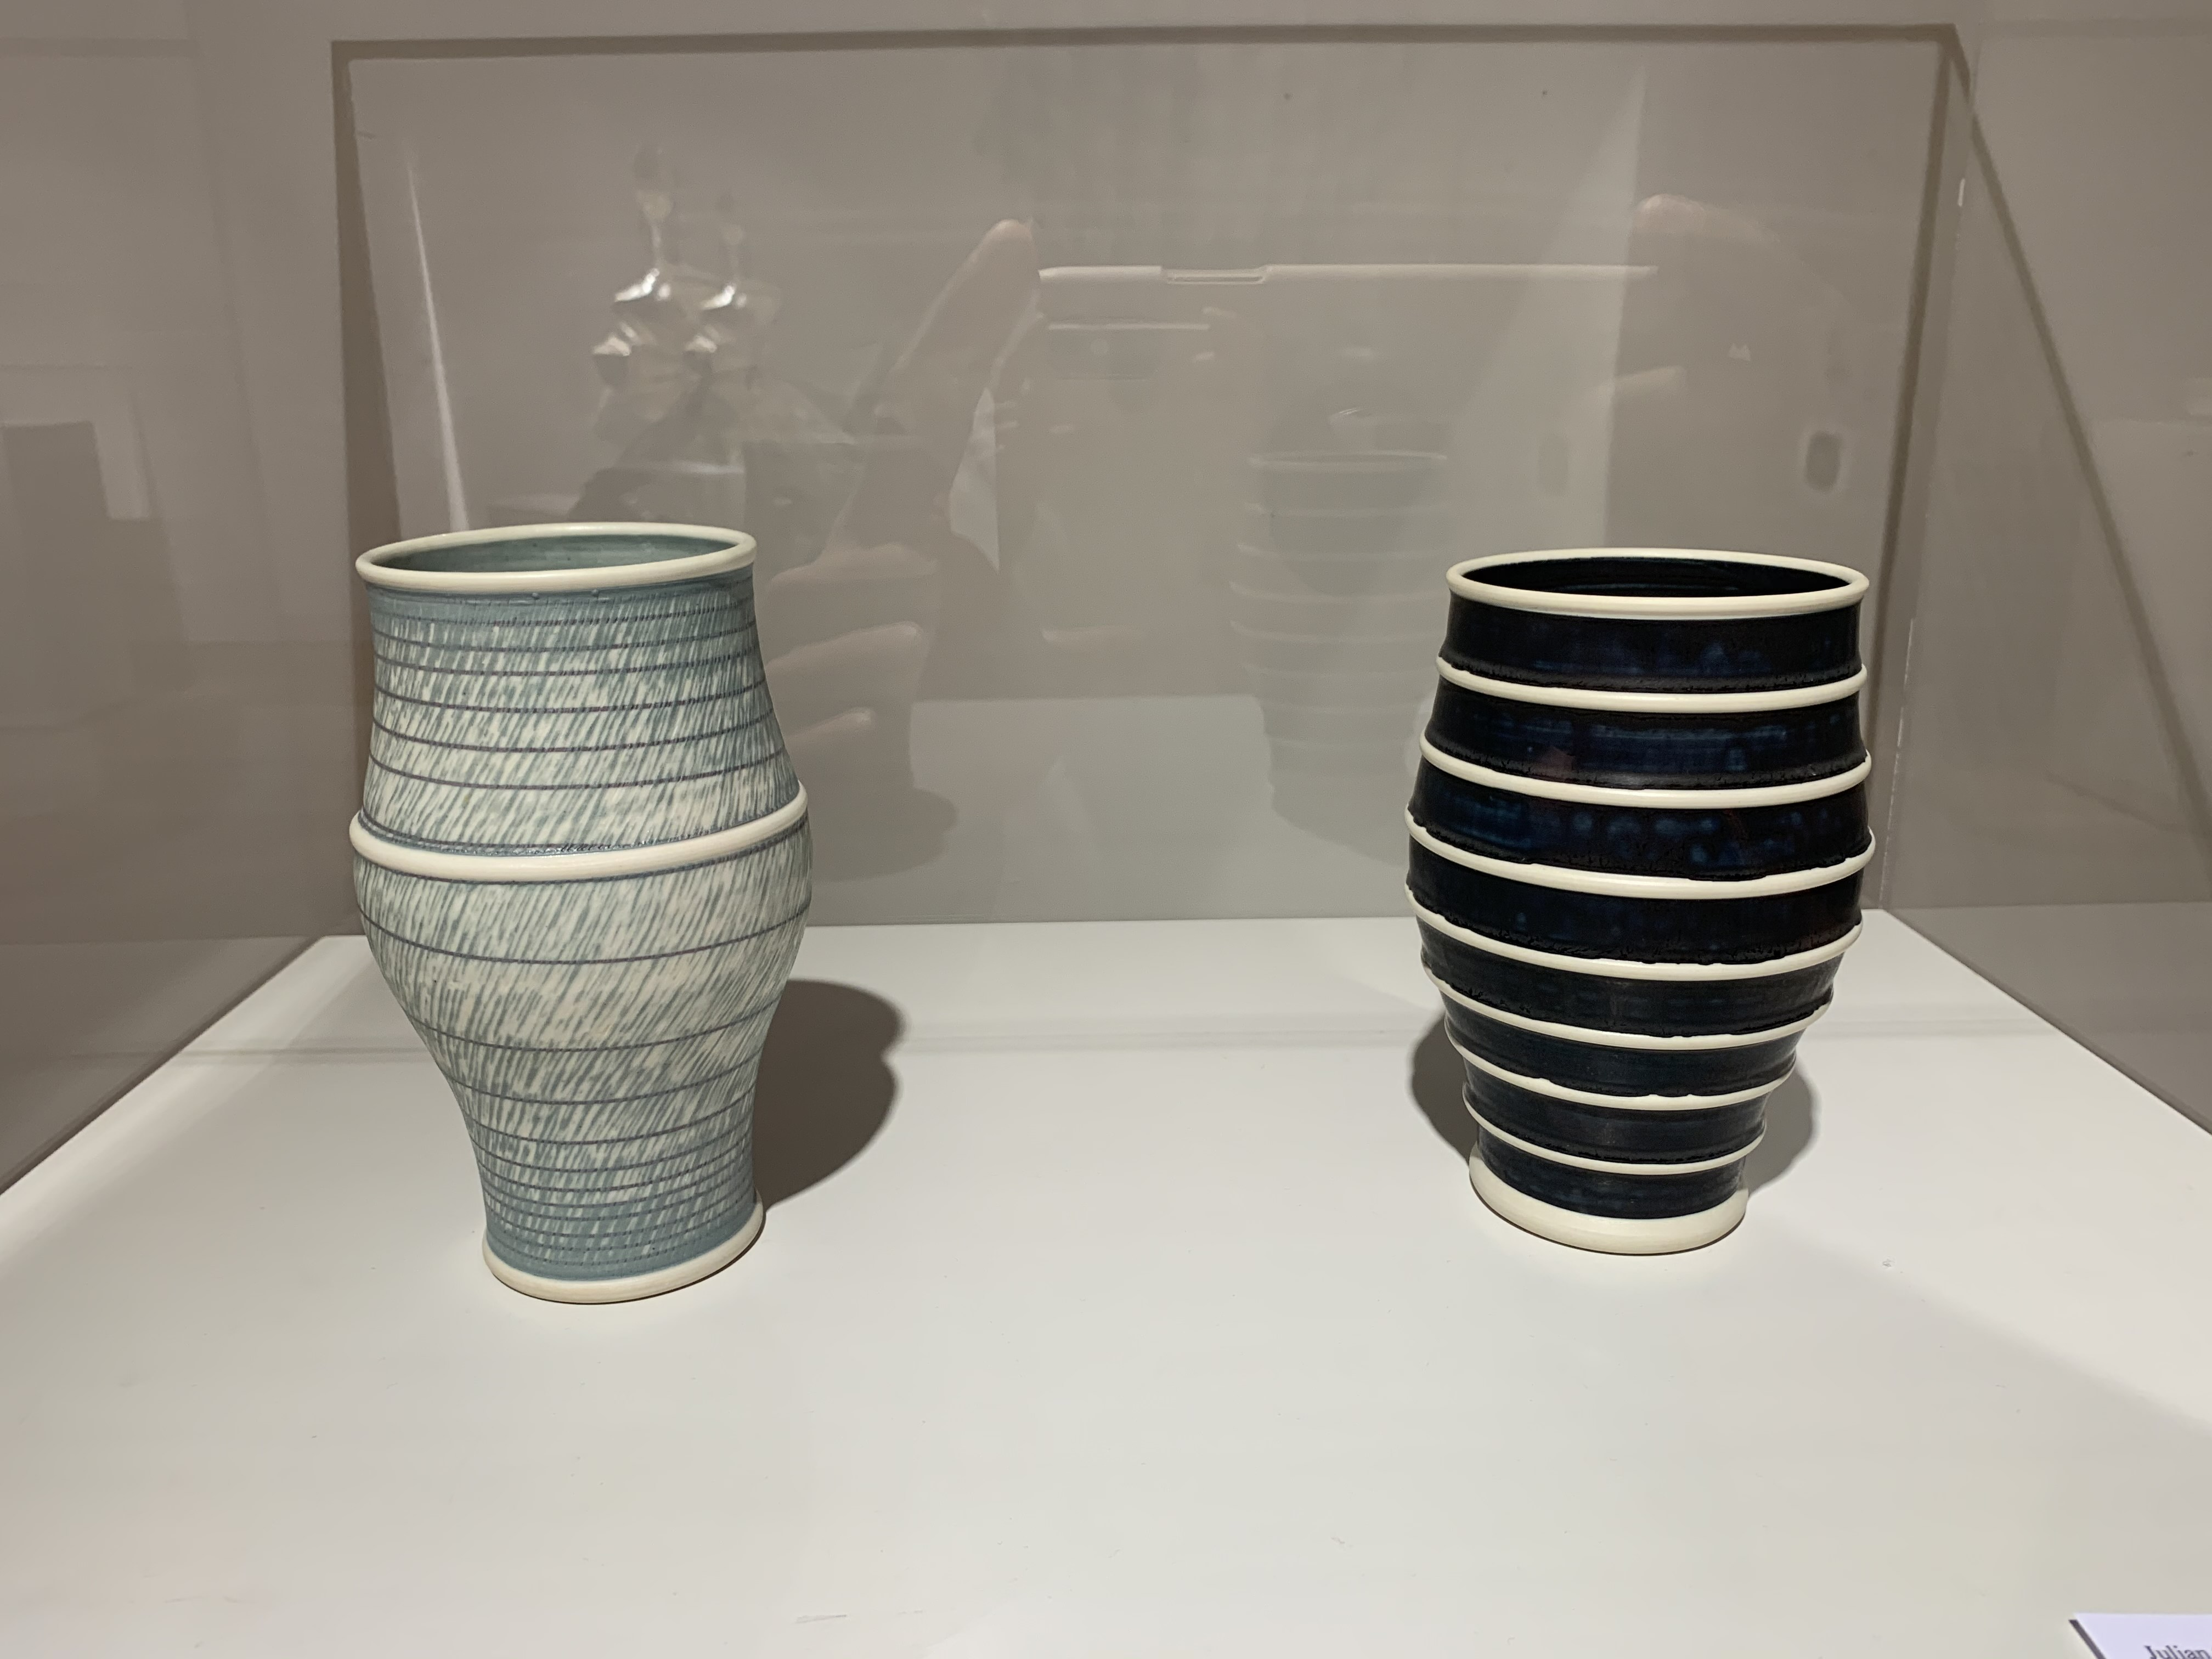 The two porcelain vessels were made by Julian Stair and are gifts of the Diane and Sandy Besser Collection.